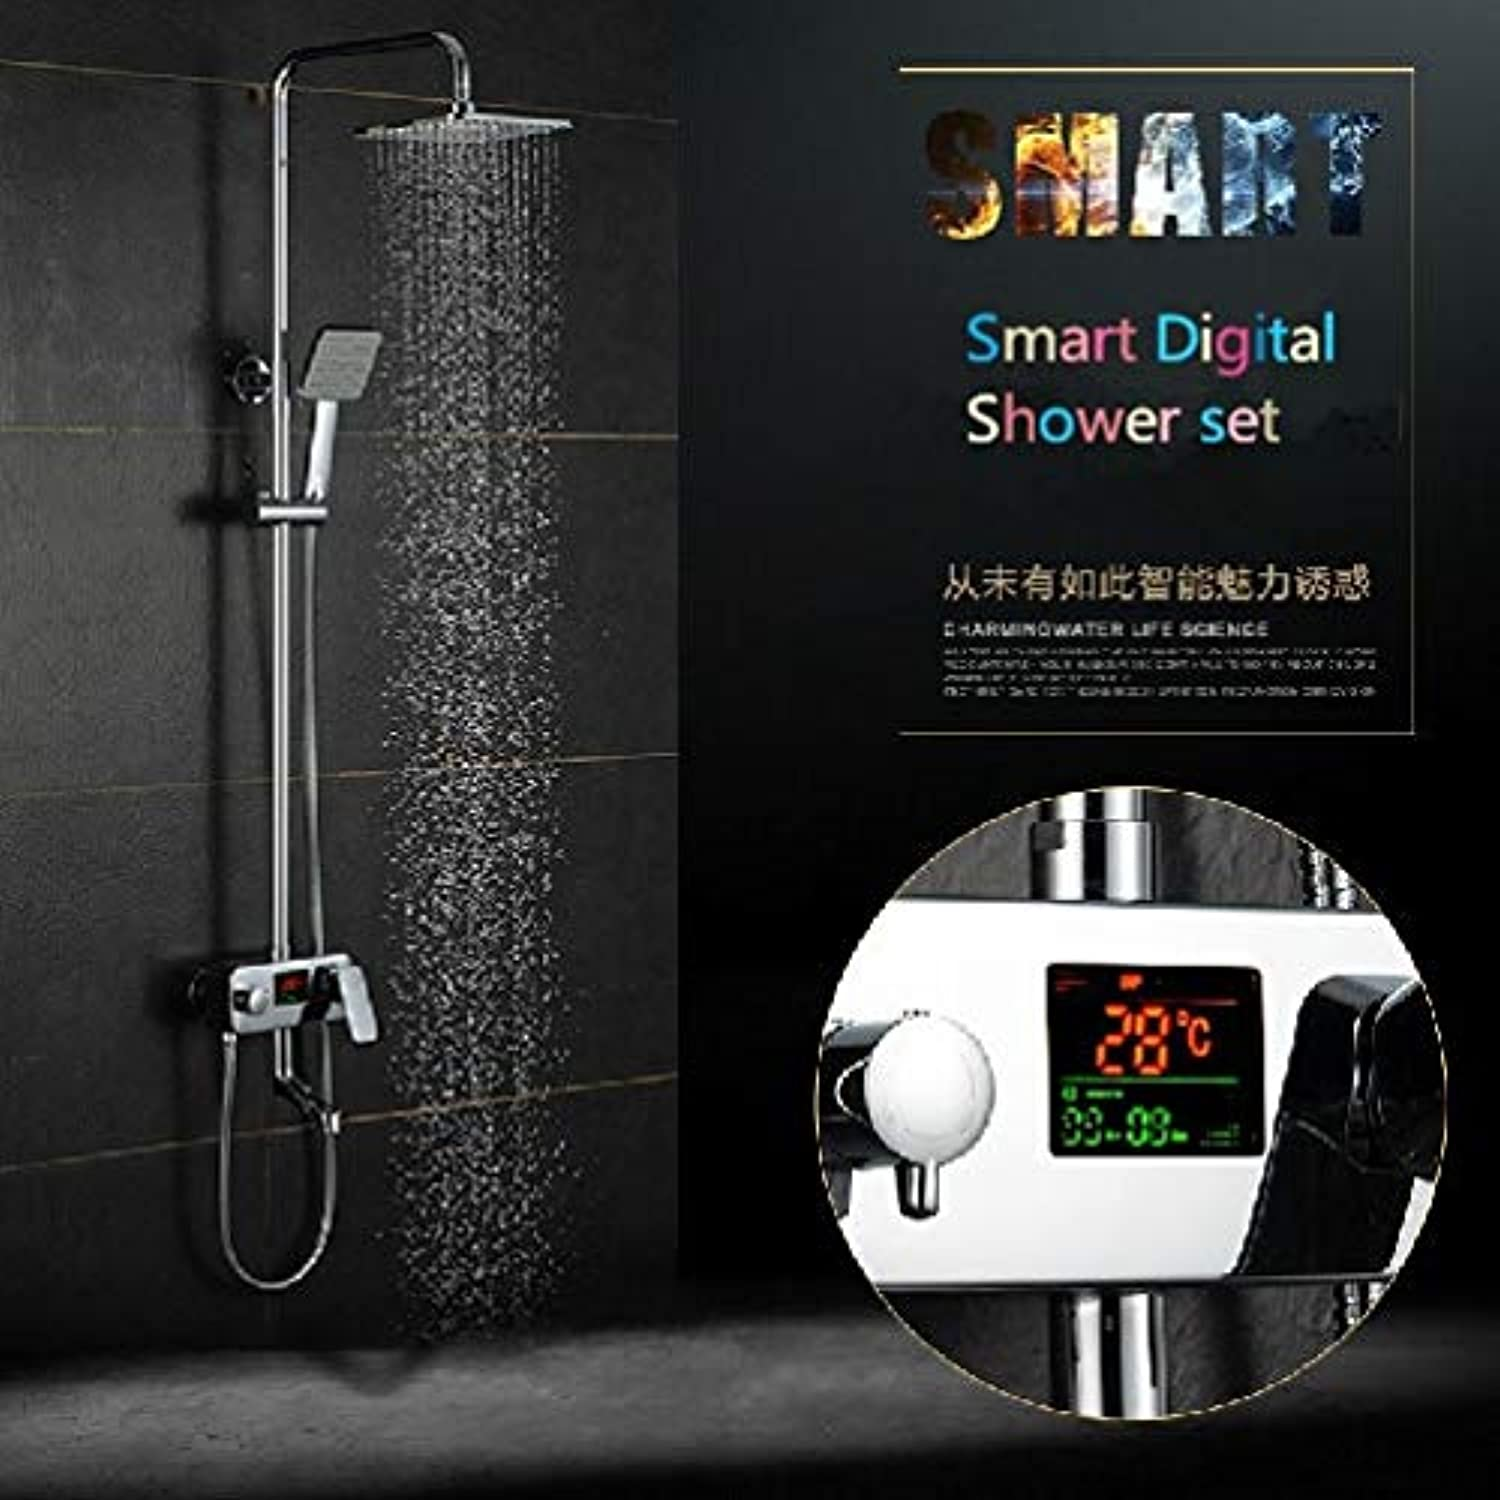 Luxury bathroom digital shower set with temperature display shower Faucet With time rainfall shower set shower set,Multi